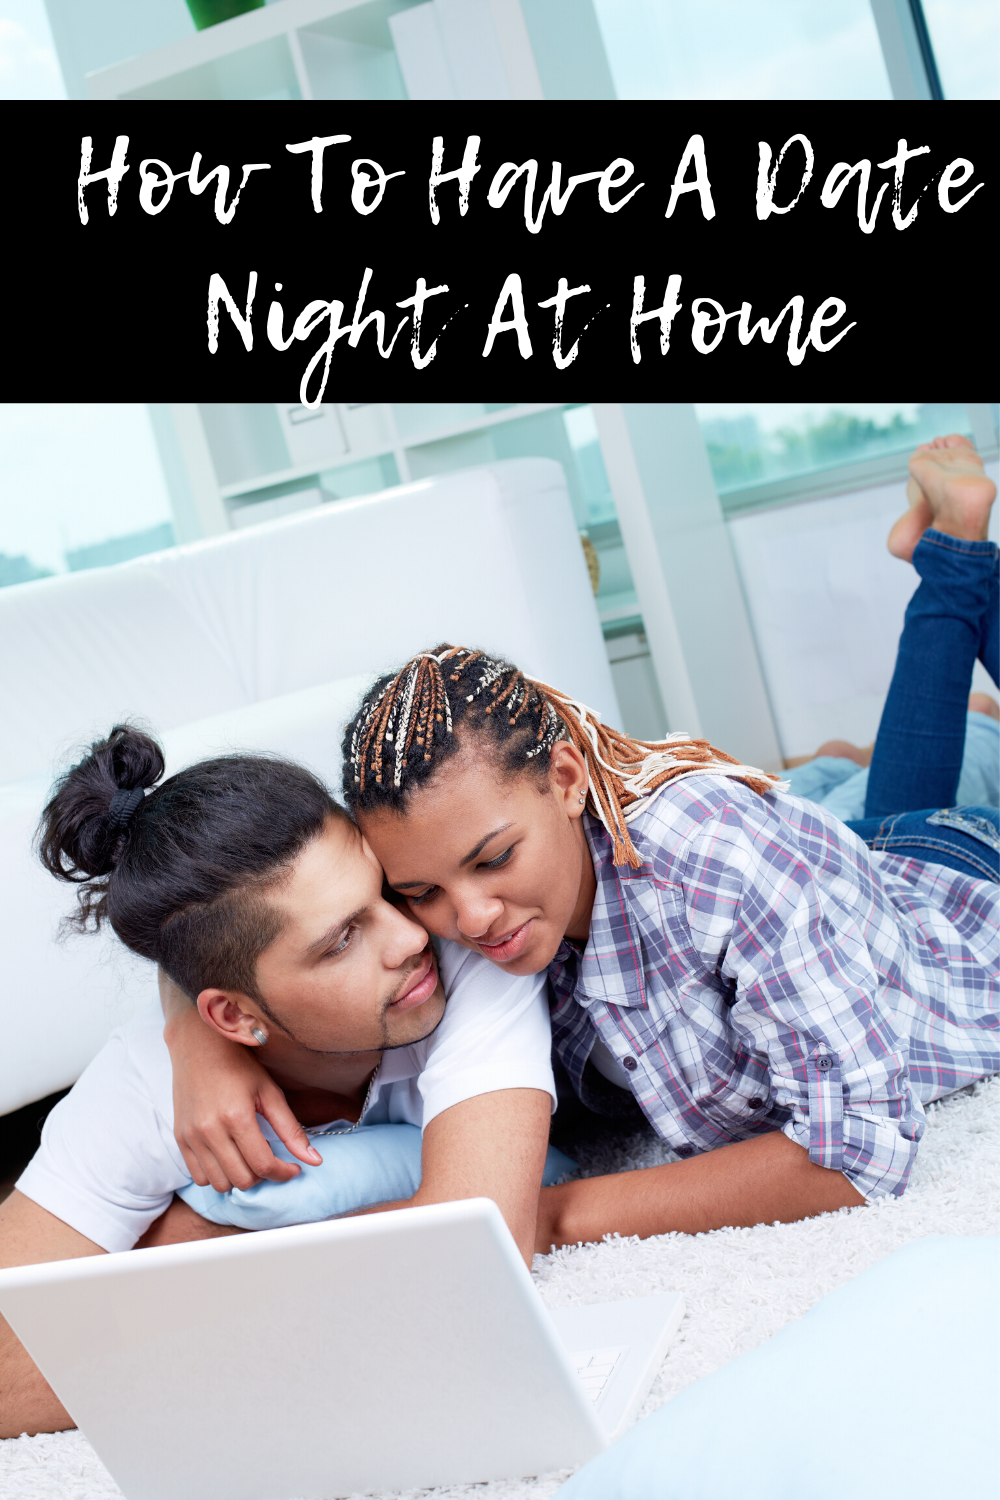 Learning how to have a fun date night at home can be great for a relationship no matter if it is new or old! These ideas for fun date nights in will keep you focused on each other and not on the fact that you can't be out and about right now!